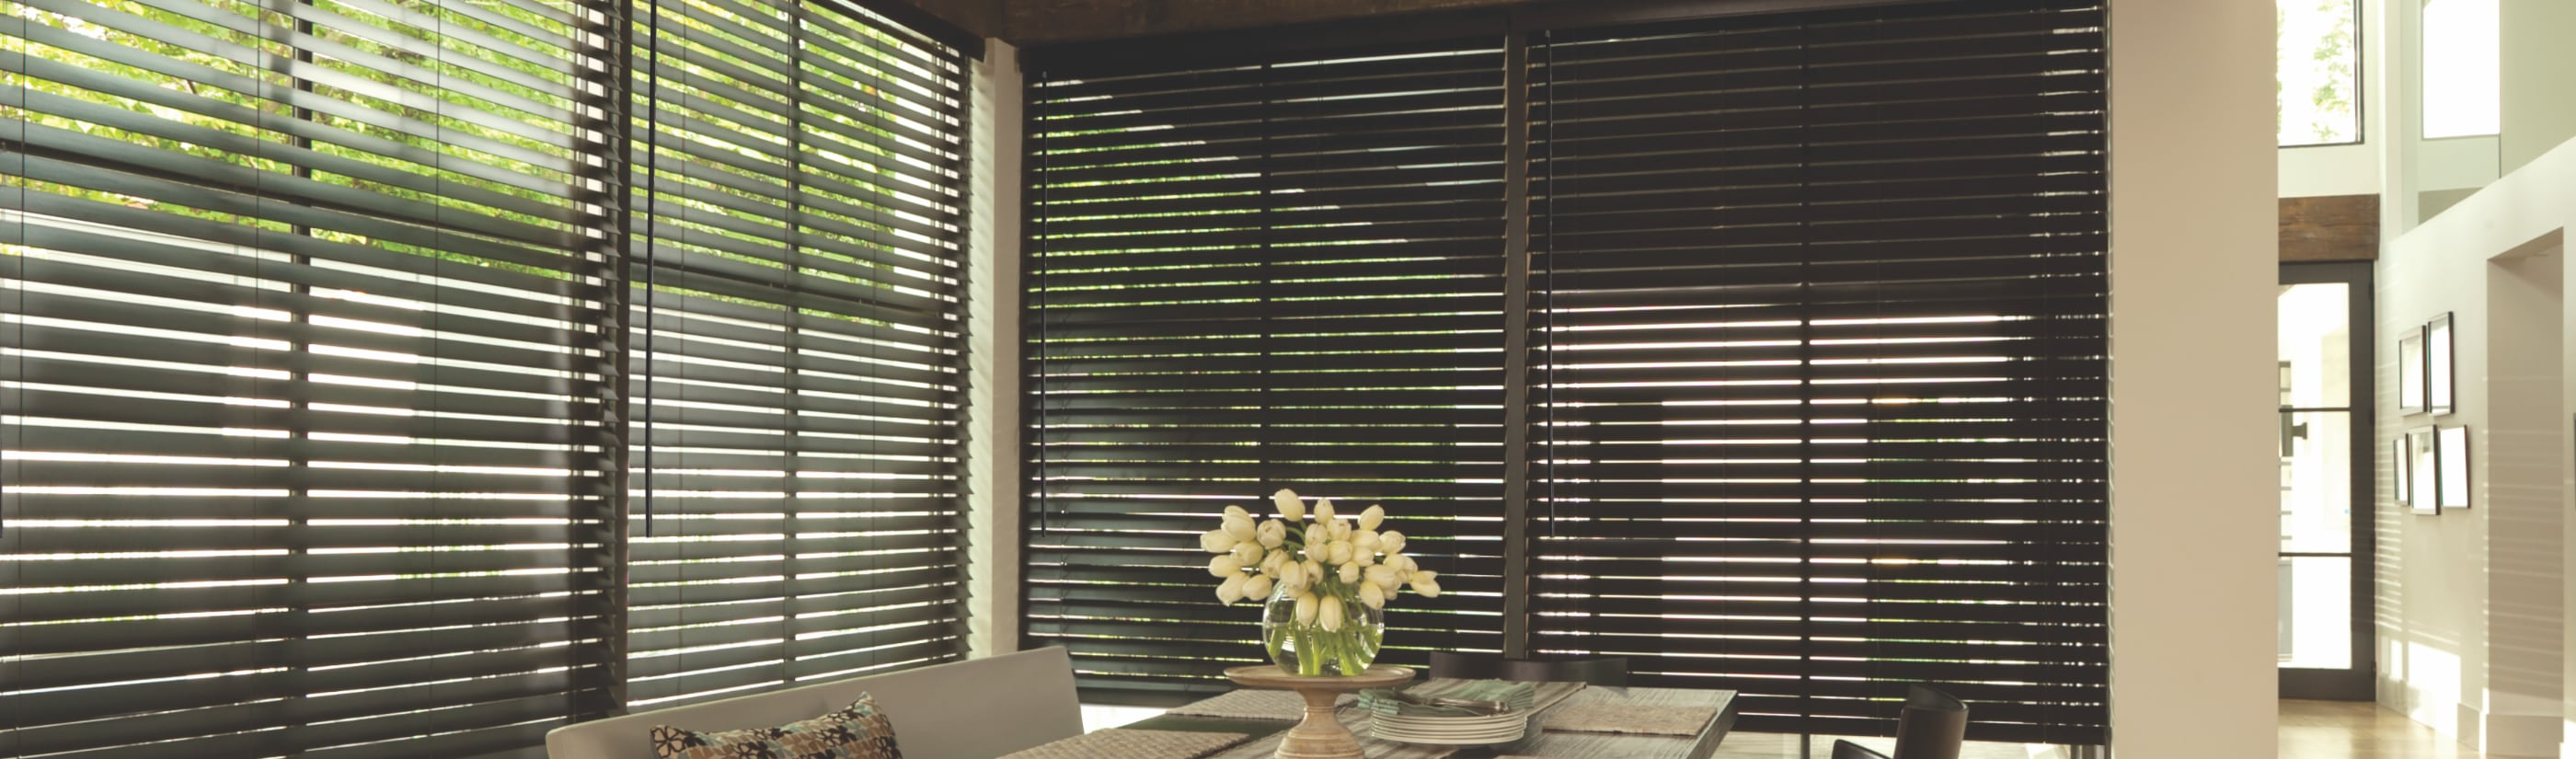 chicago some and il kitchen shutters plantation confuse blinds why homeowners in blog